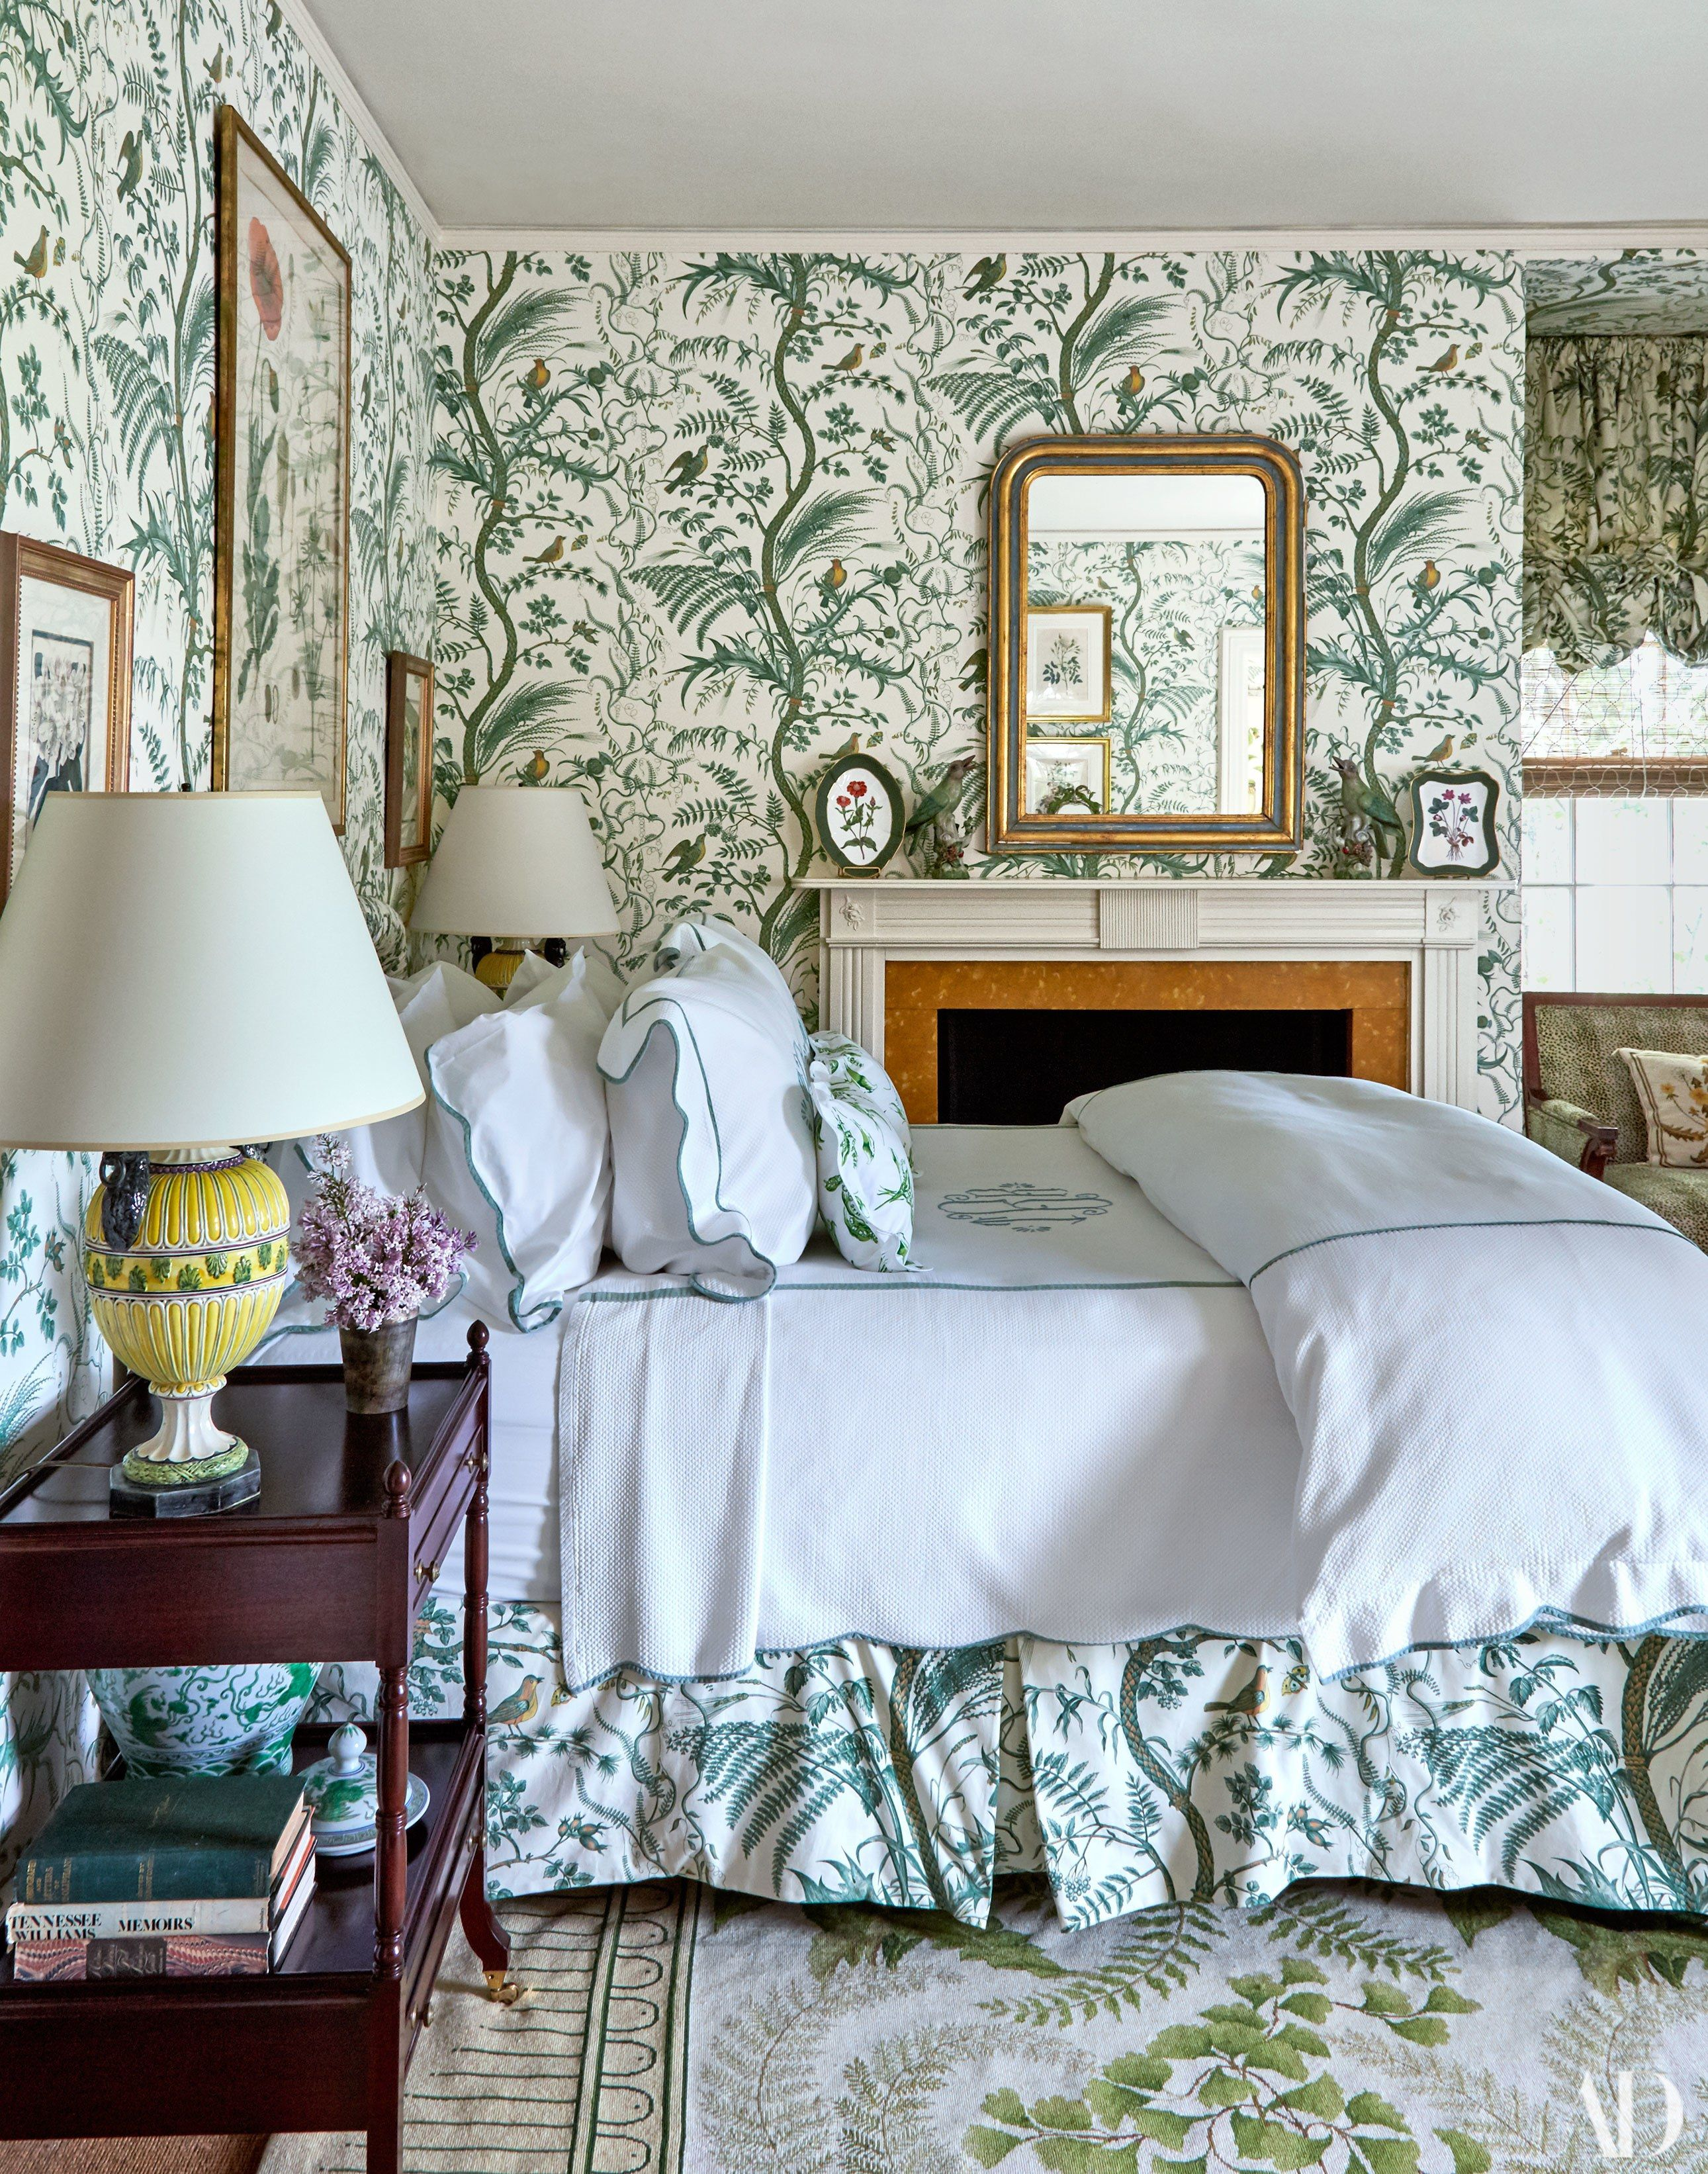 step inside fashion icon tory burch's home | architectural digest